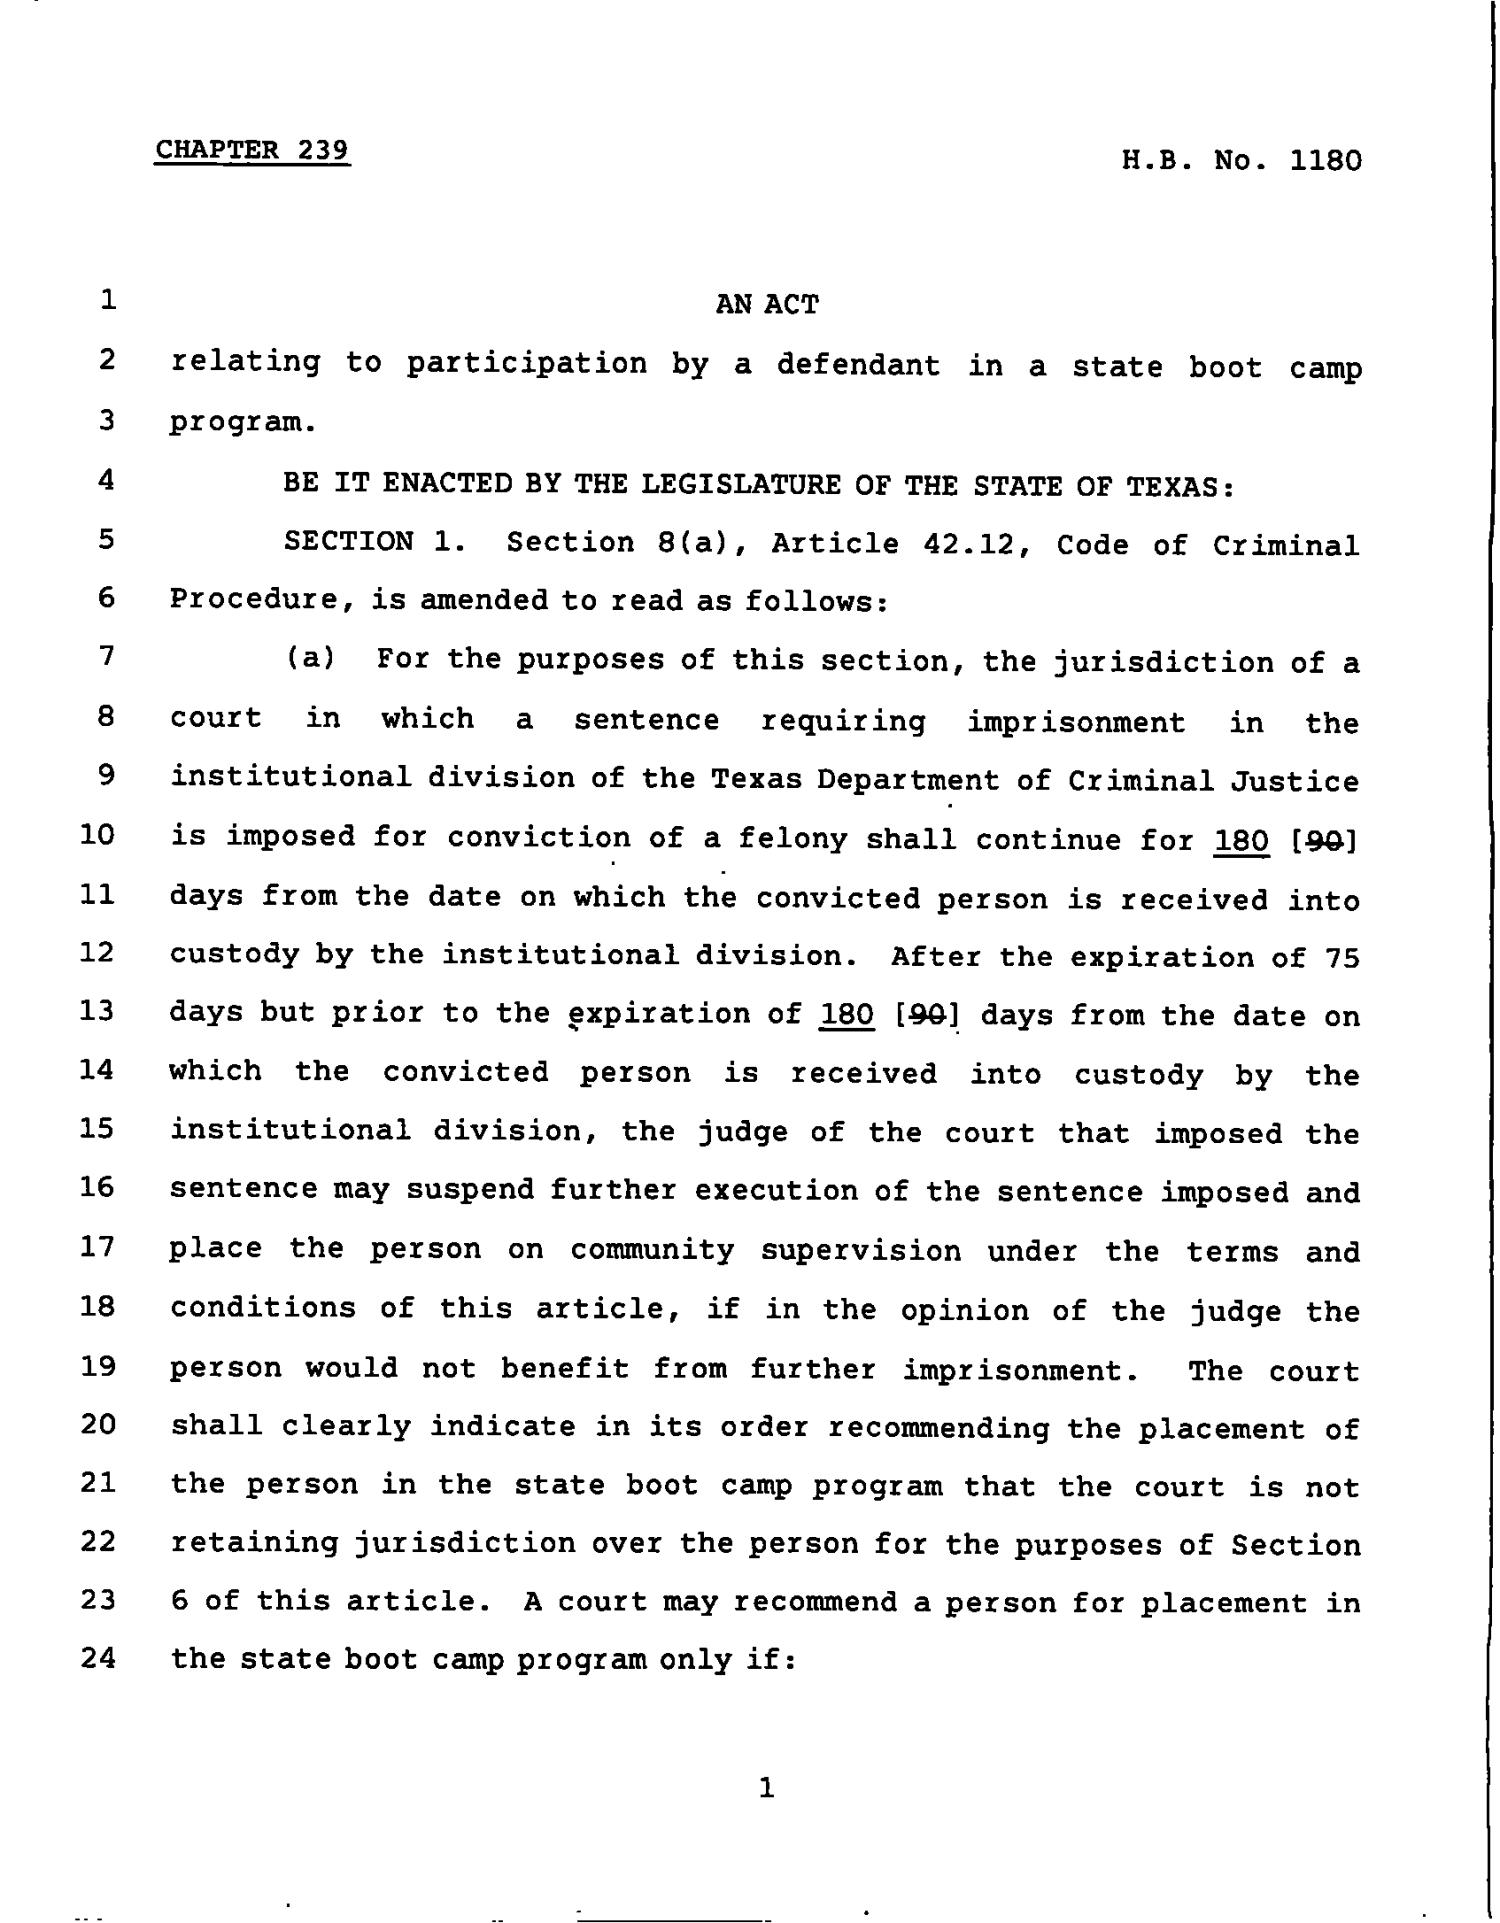 78th Texas Legislature, Regular Session, House Bill 1180, Chapter 239                                                                                                      [Sequence #]: 1 of 4